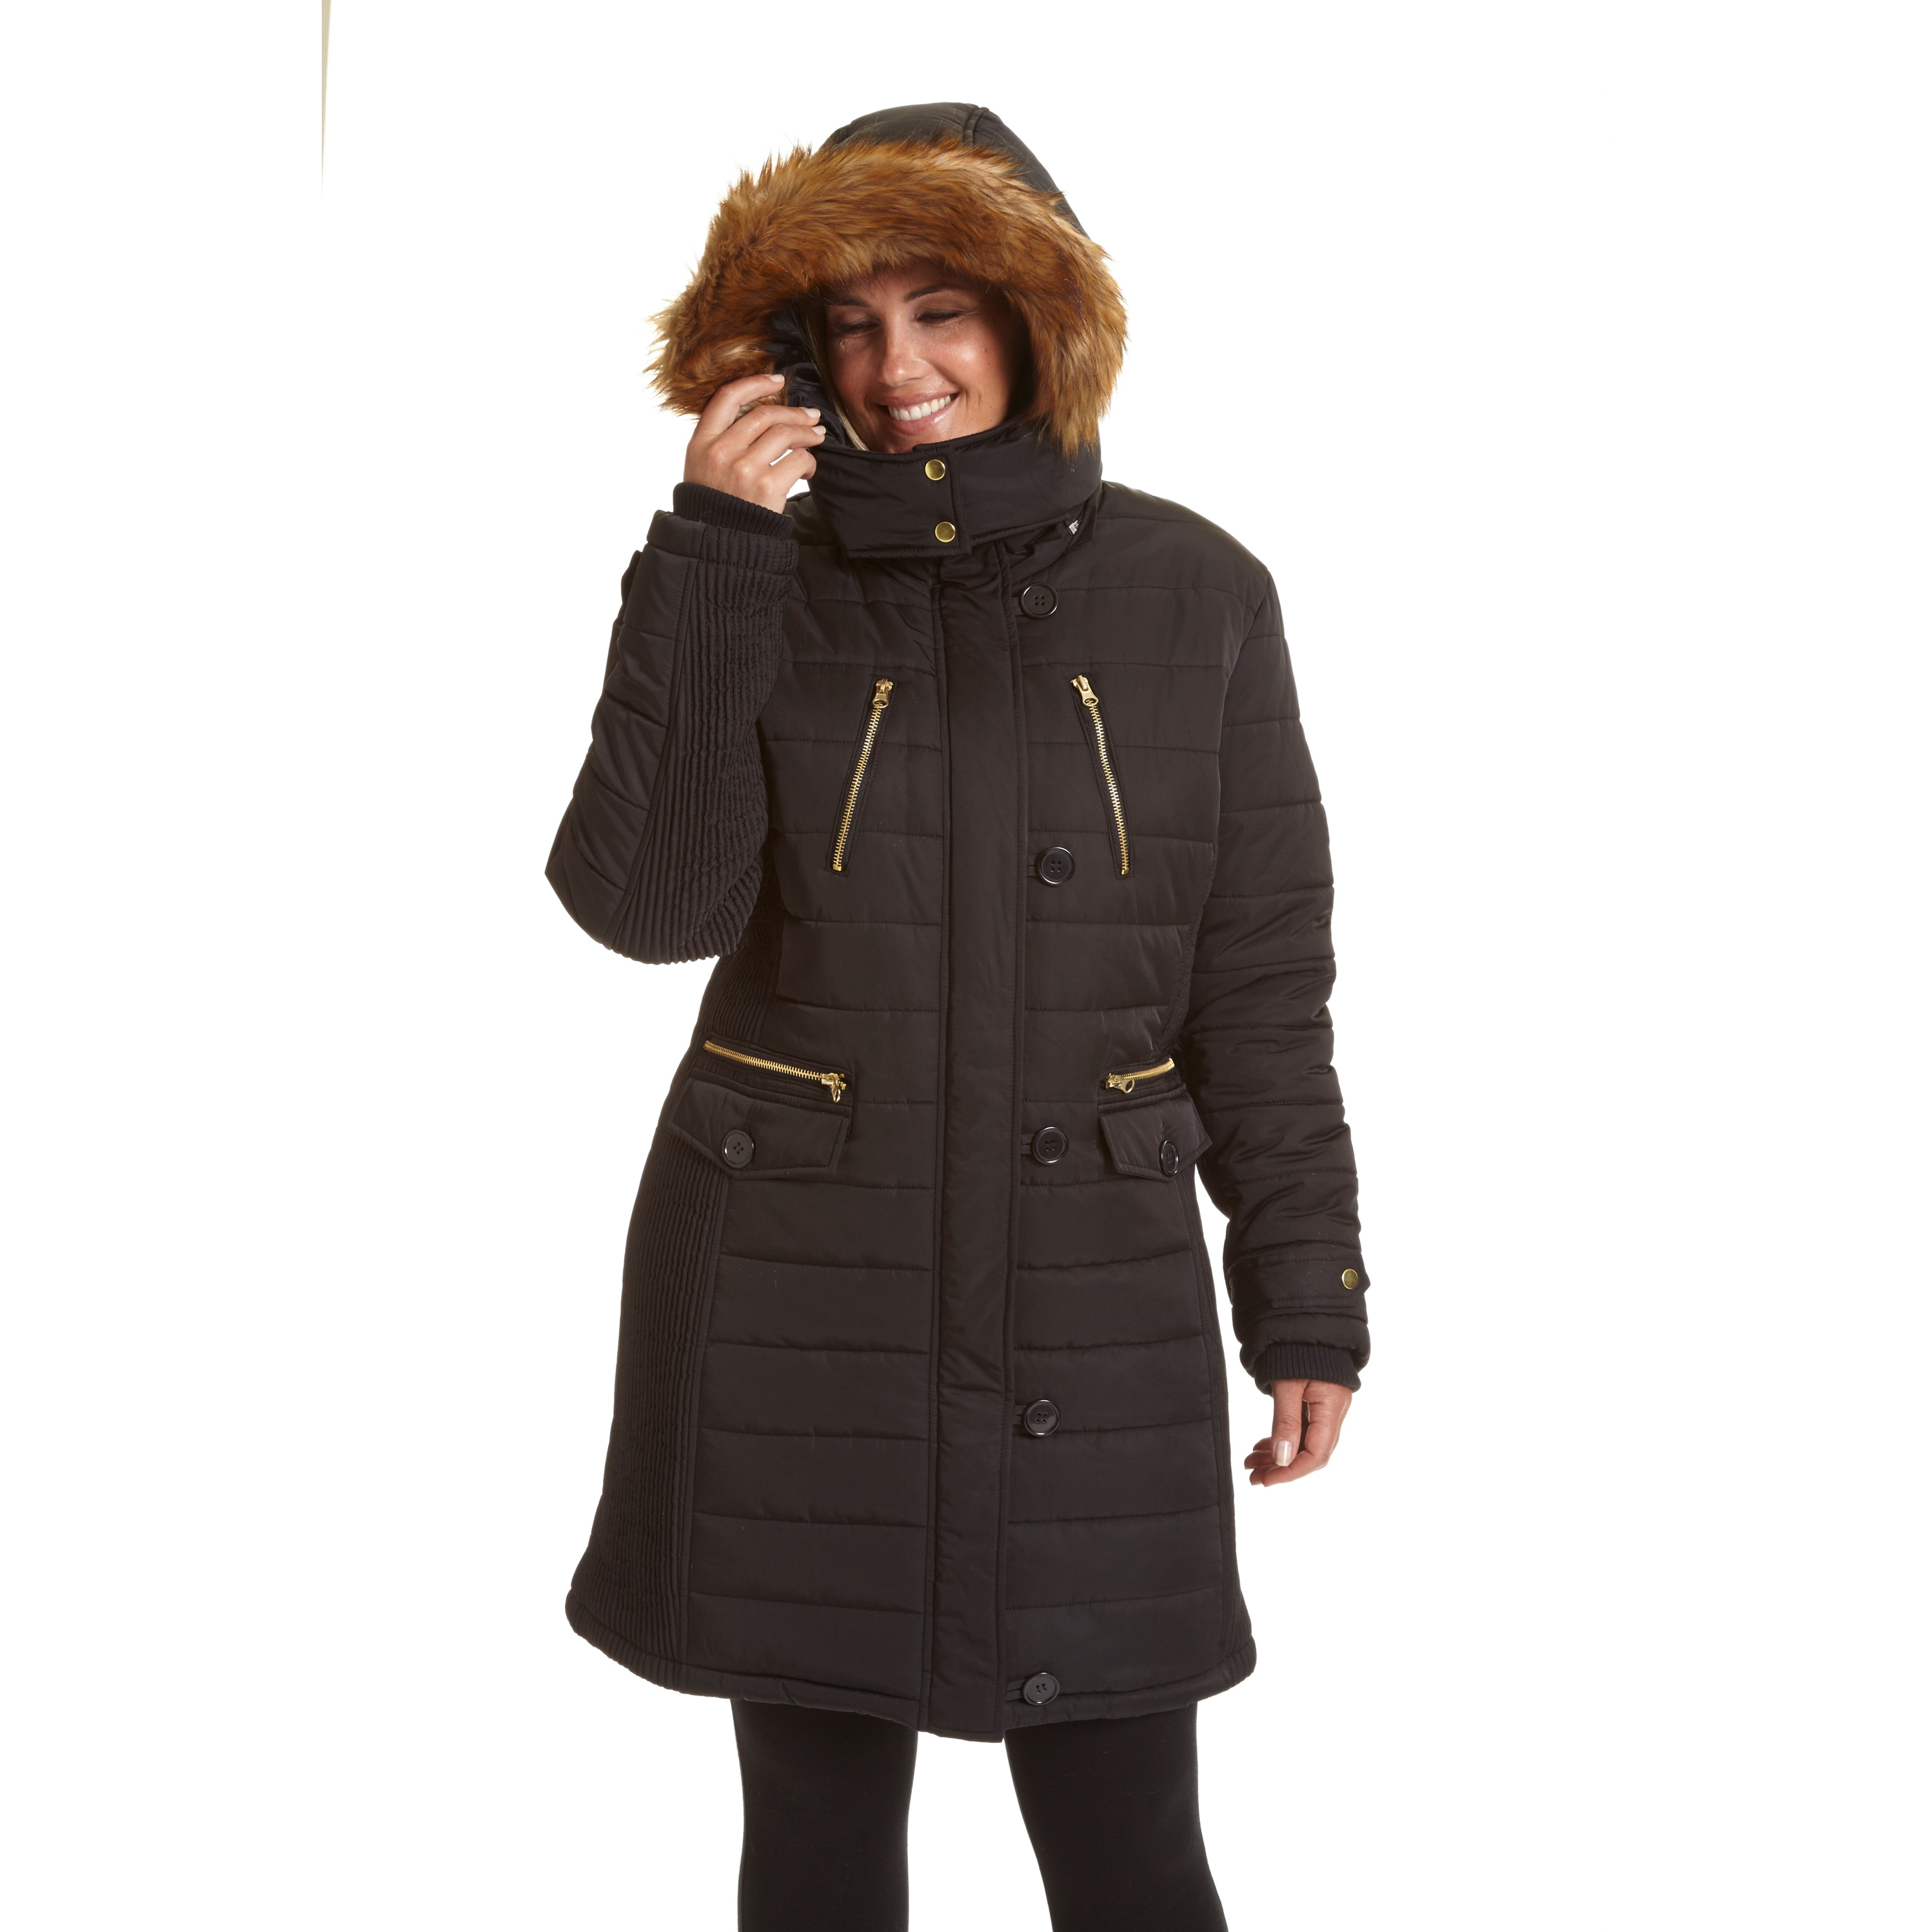 dee3a429f476a Shop Excelled Women s Plus Size 3 4-length Hooded Puffer Coat - Free  Shipping Today - Overstock - 12381902